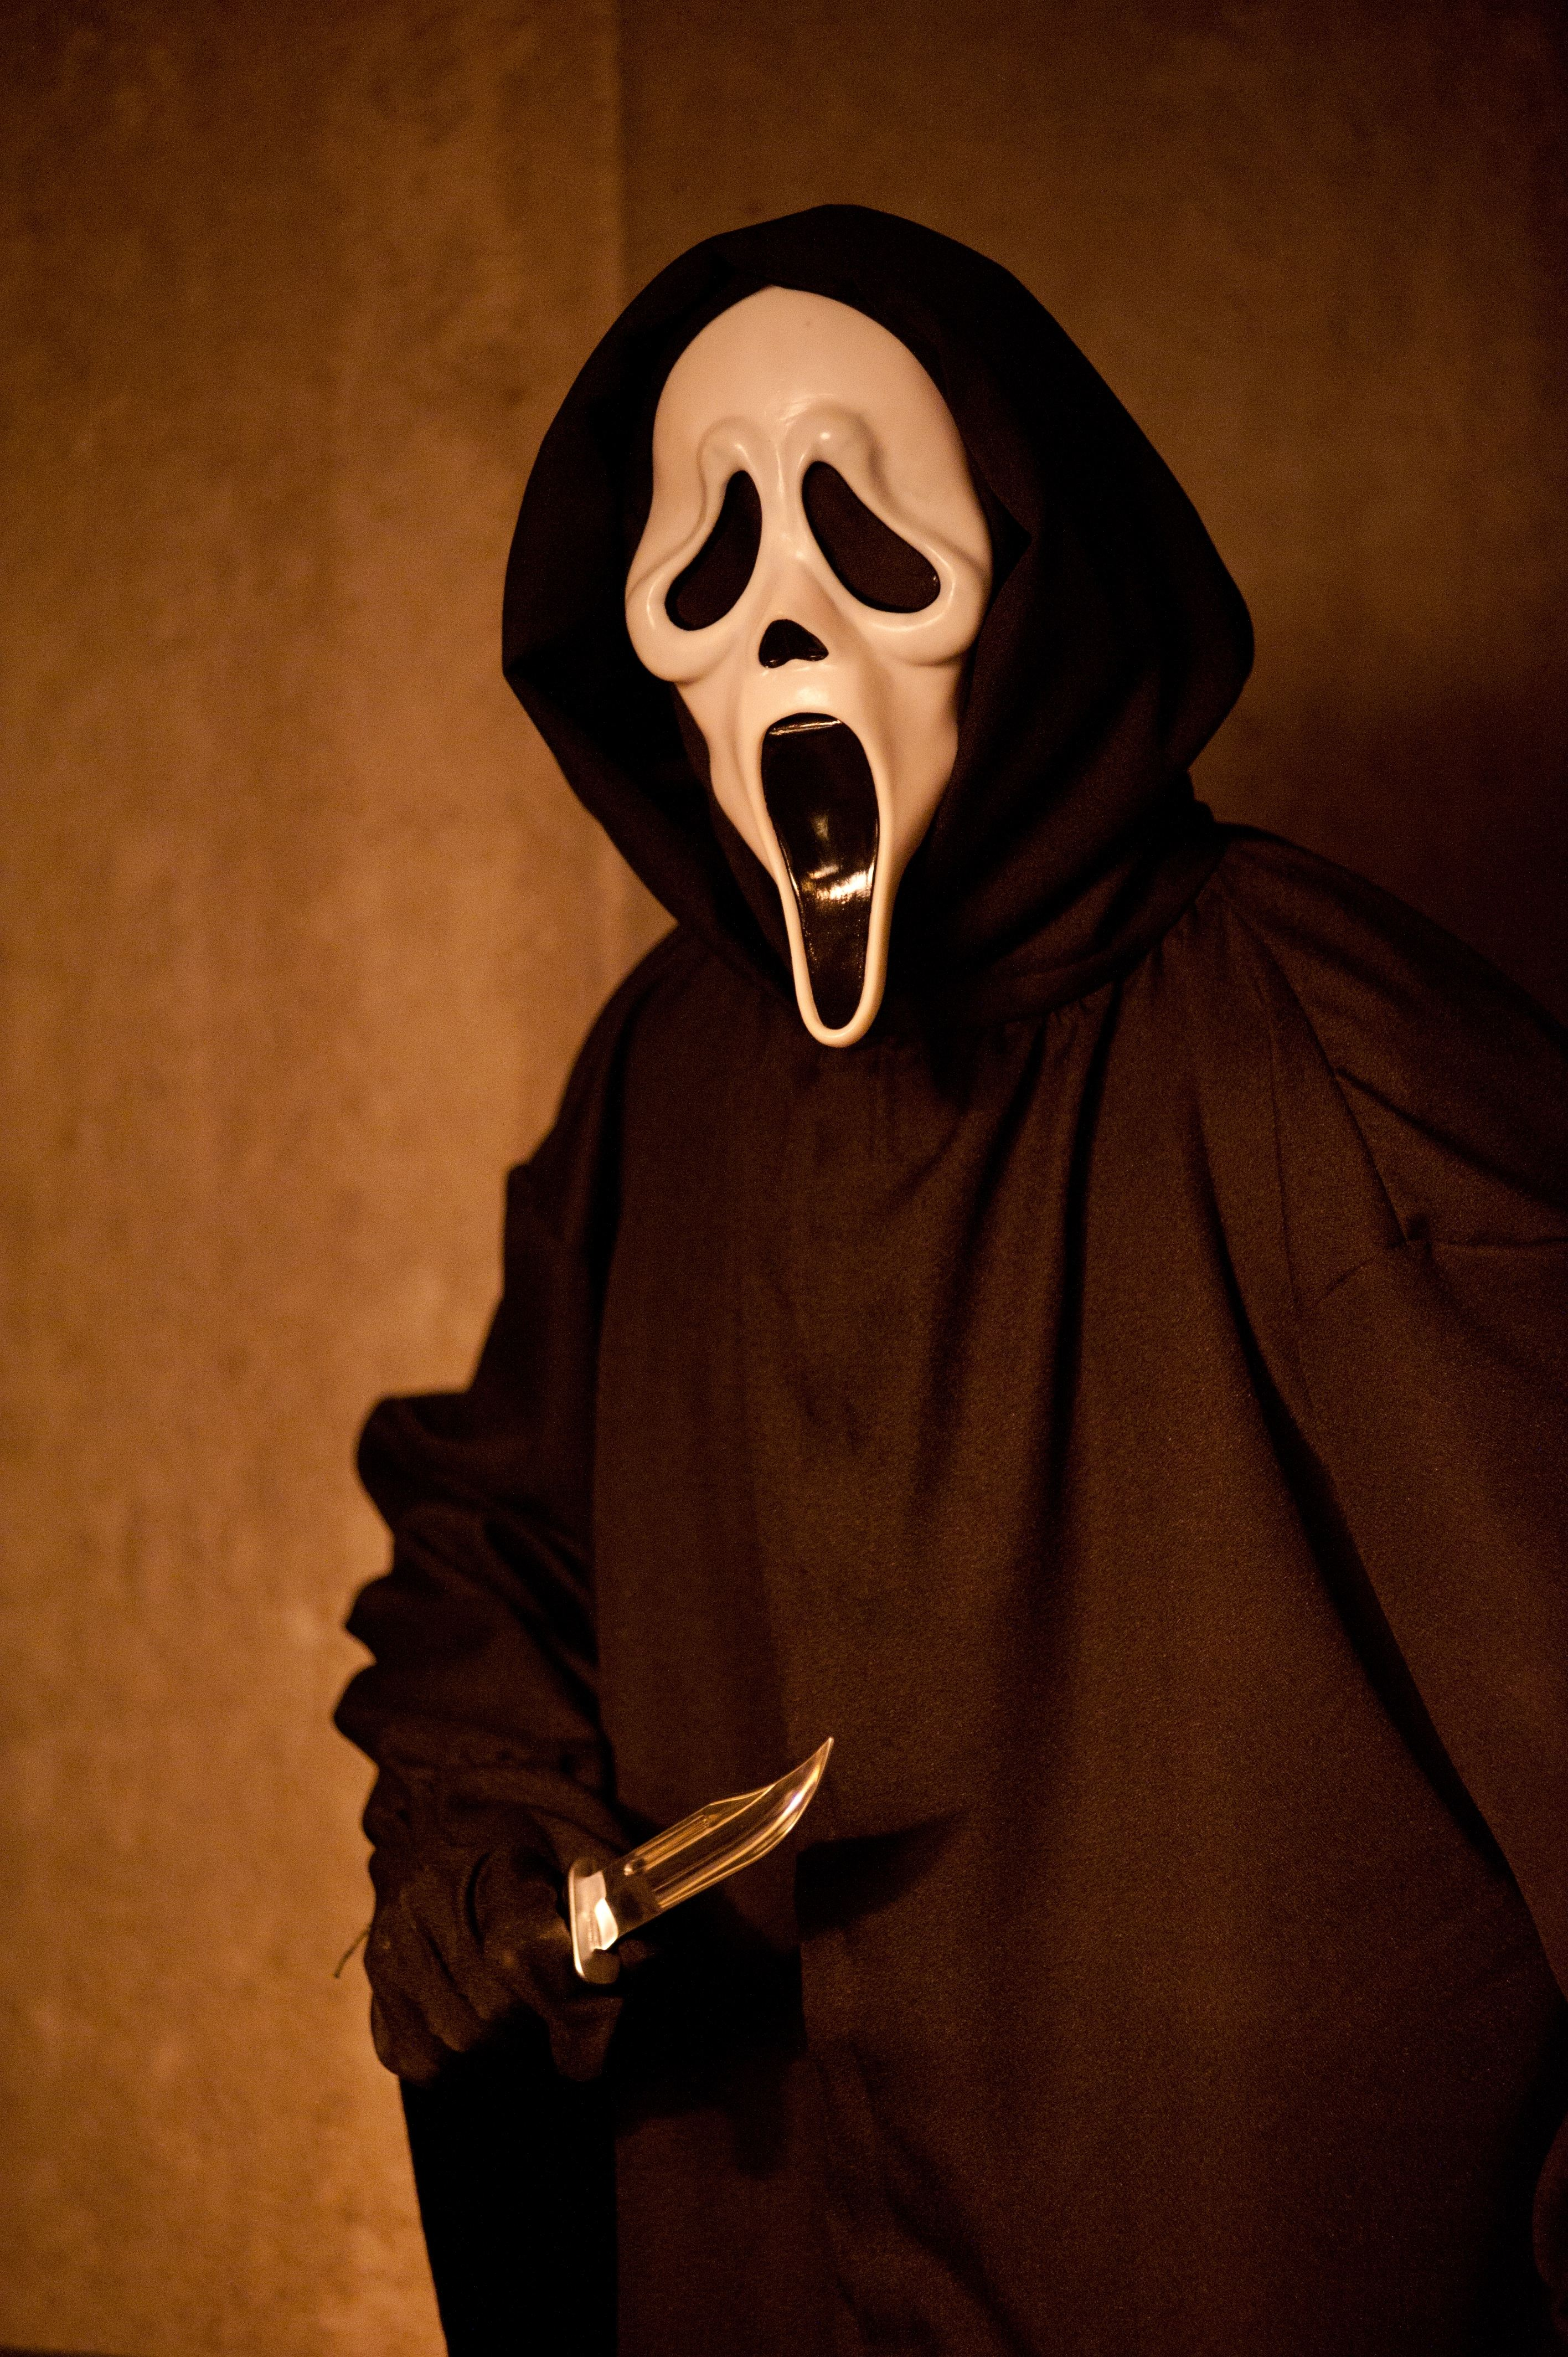 Scream Wallpapers High Quality Download Free